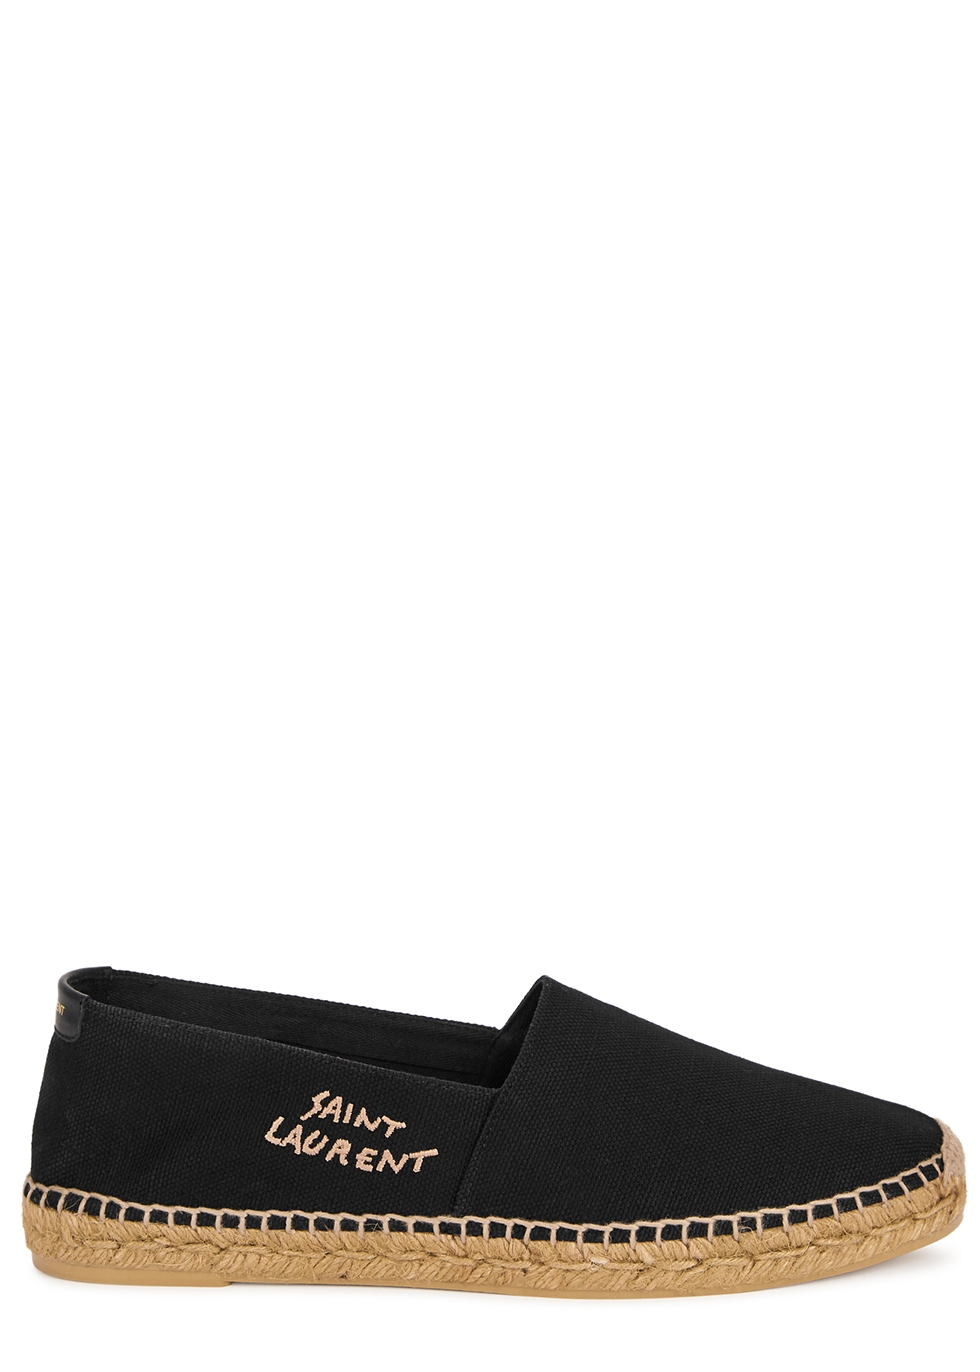 Black logo canvas espadrilles